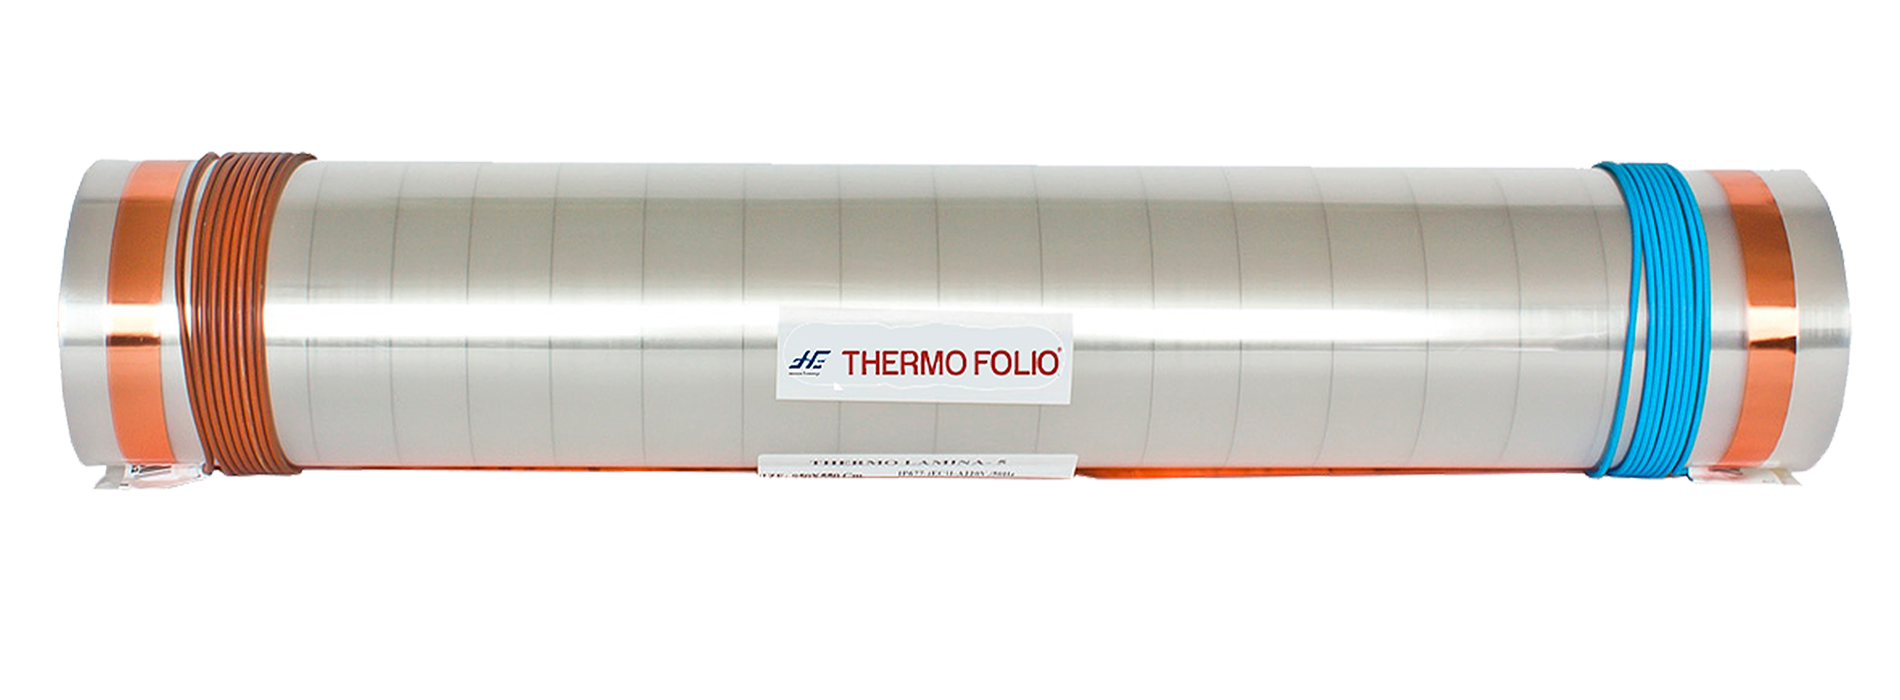 COMPRAR THERMO FOLIO S